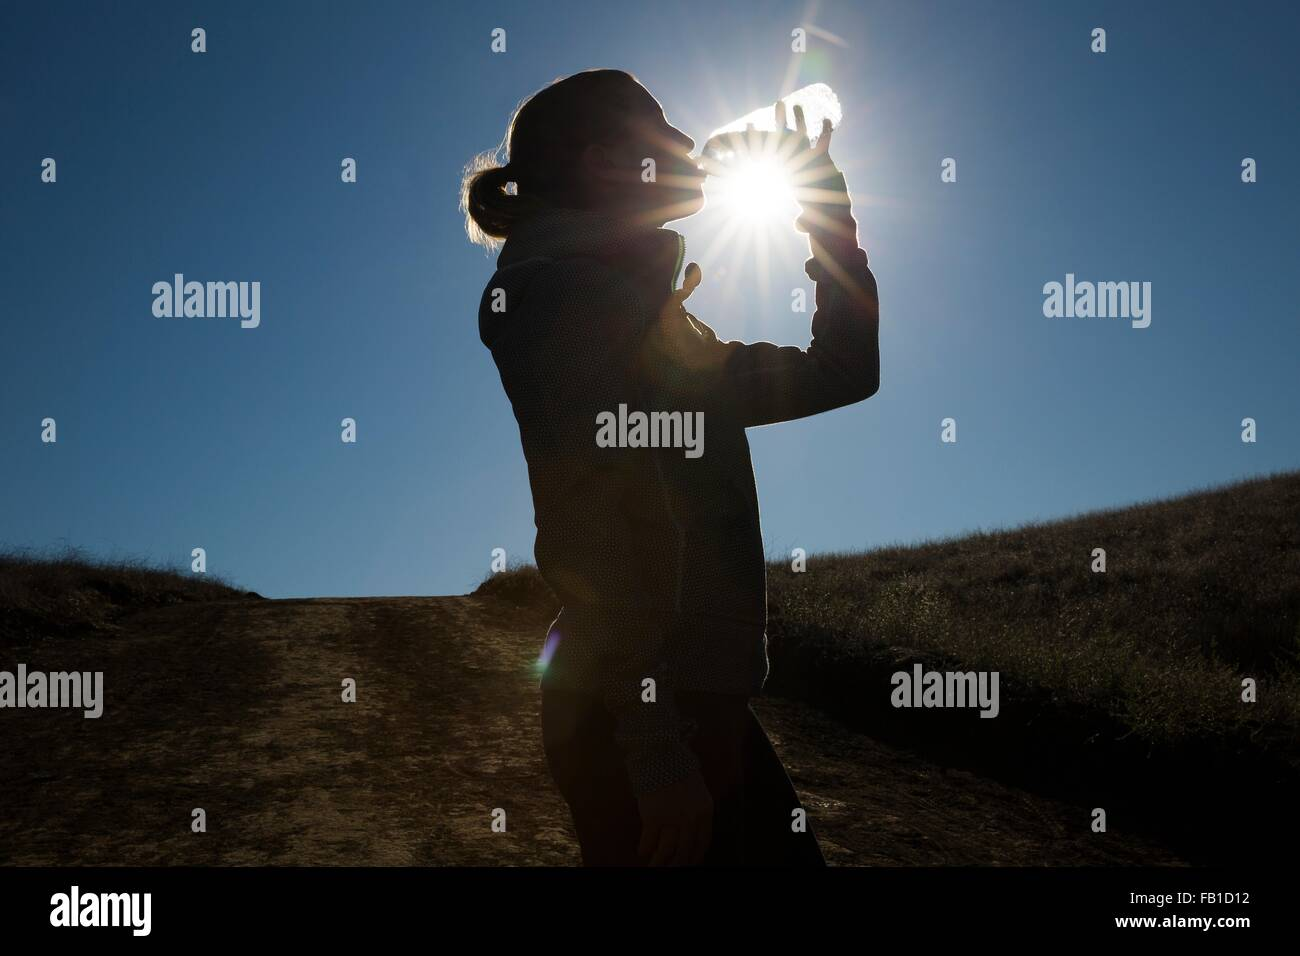 Silhouetted female runner drinking from water bottle - Stock Image